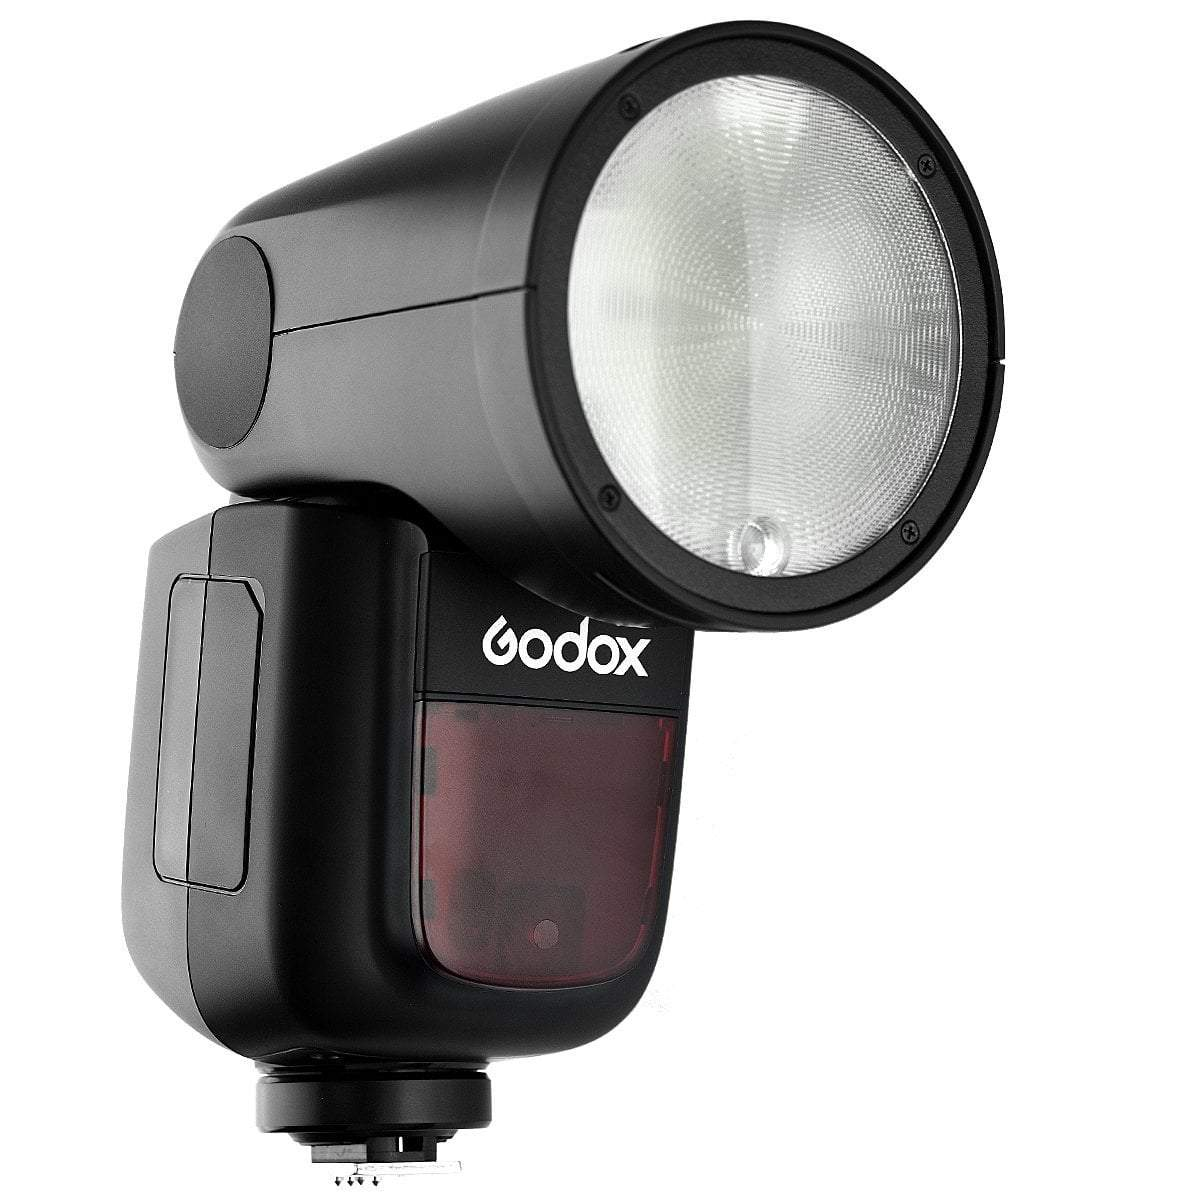 Godox V1N TTL Round Head Lithium Battery Speedlite for Nikon - Strobepro Studio Lighting